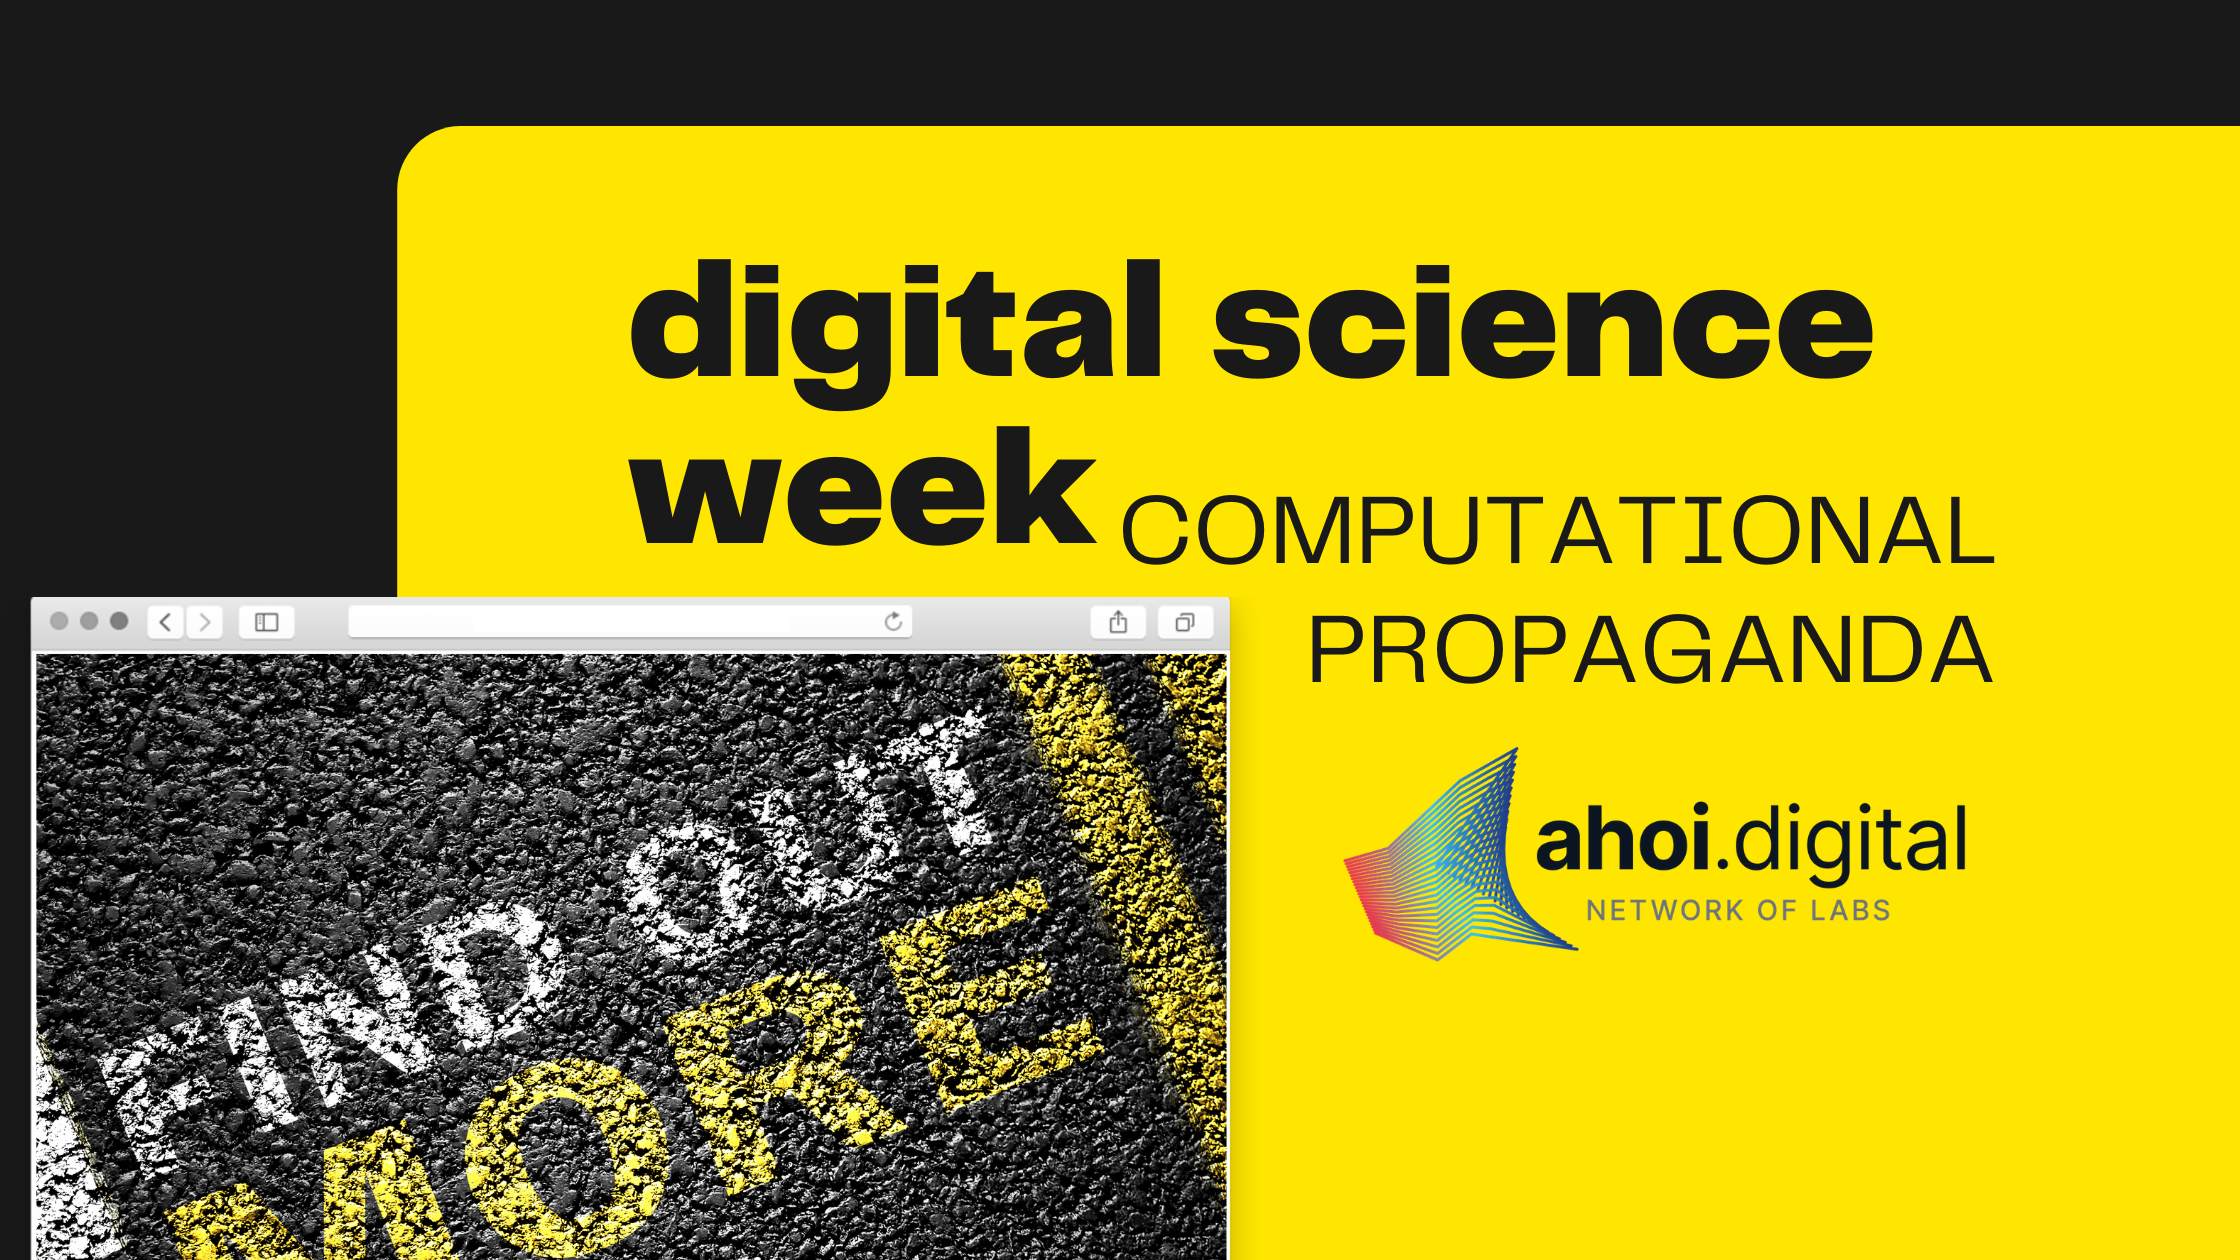 "gezeigt wird ein dekoratives Bild in gelb und schwarz mit einem Foto das fragt ""find out more"" es trägt die Überschrift digital Science Week Computational propaganda presented by ahoi.digital network of labs"